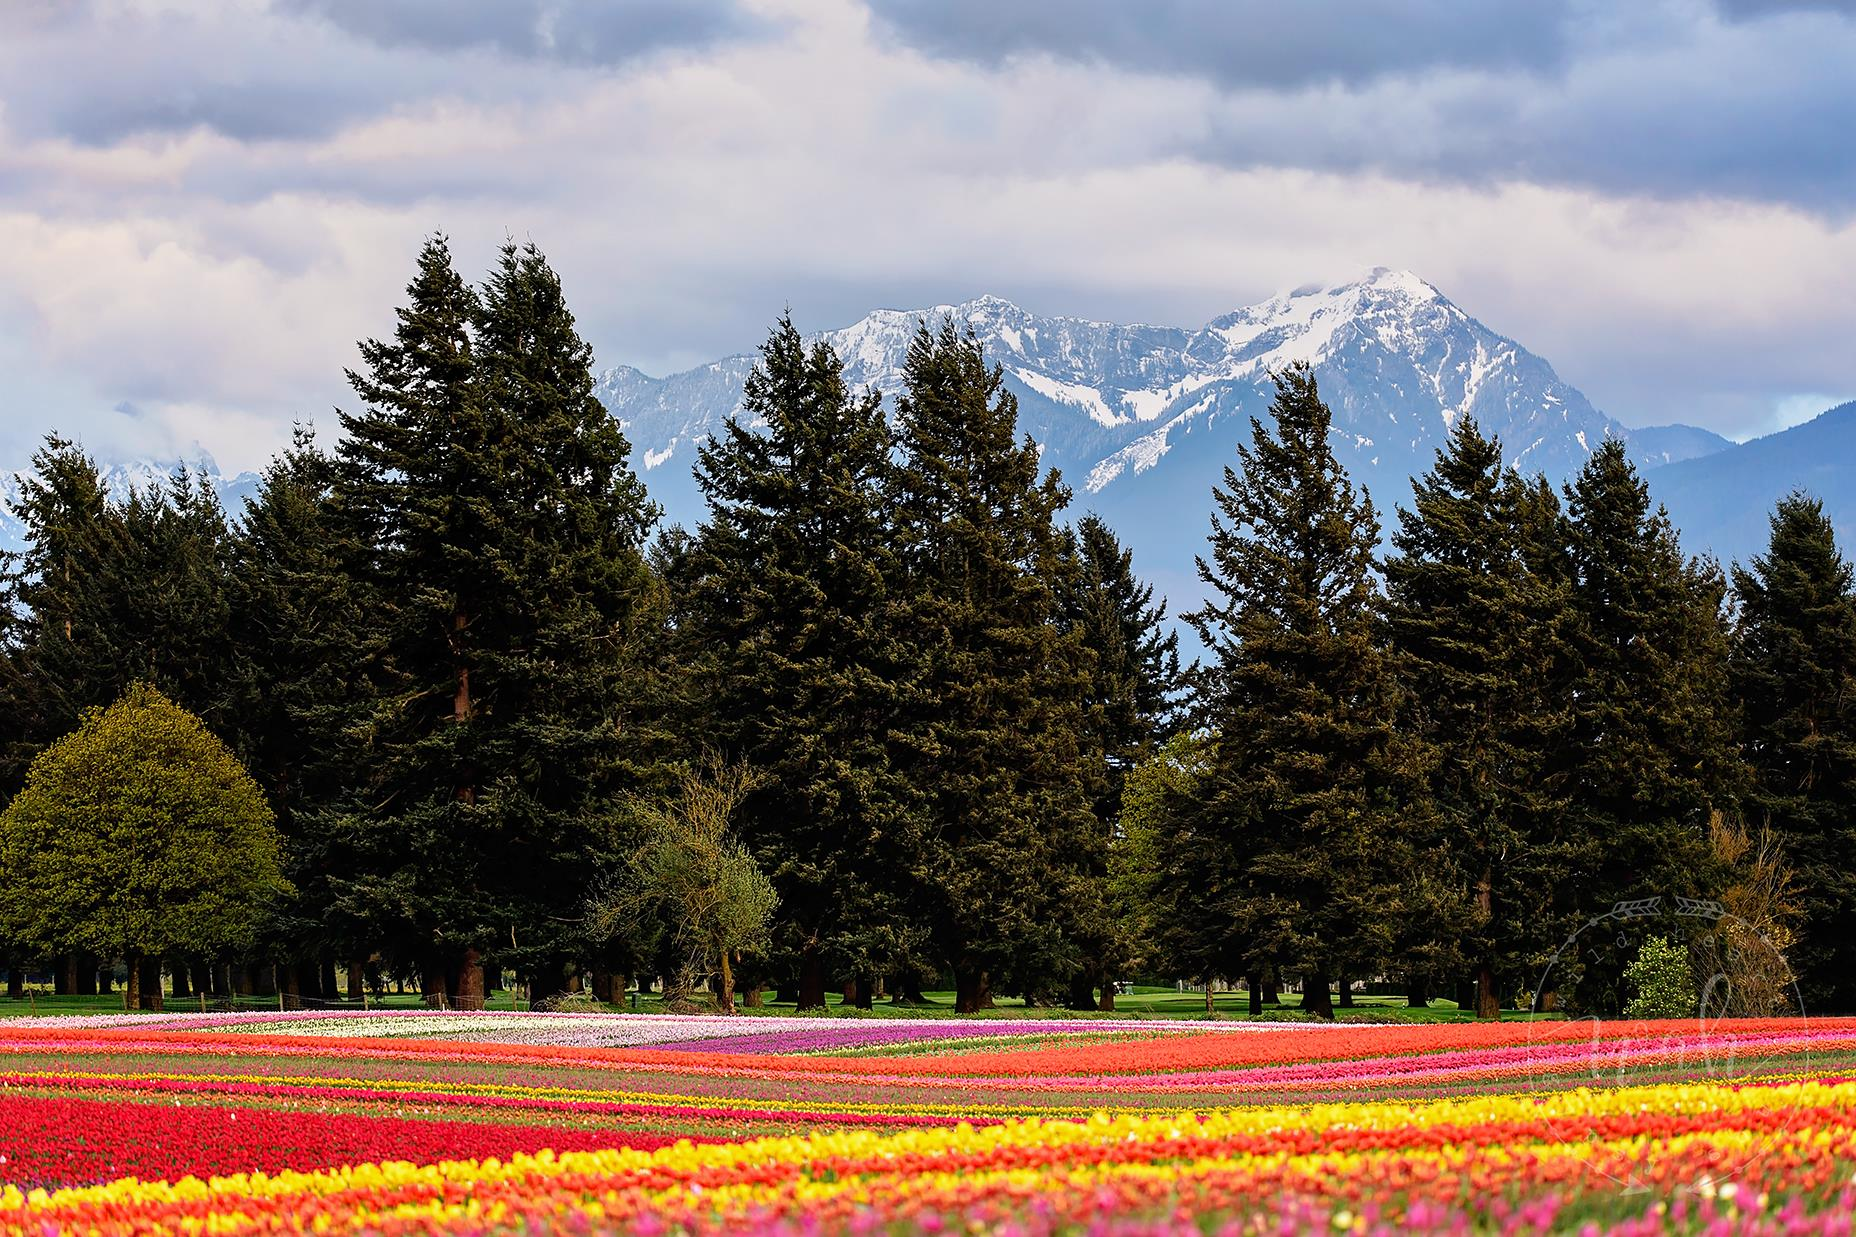 Fraser Valley Tulips - Elsie Rogers